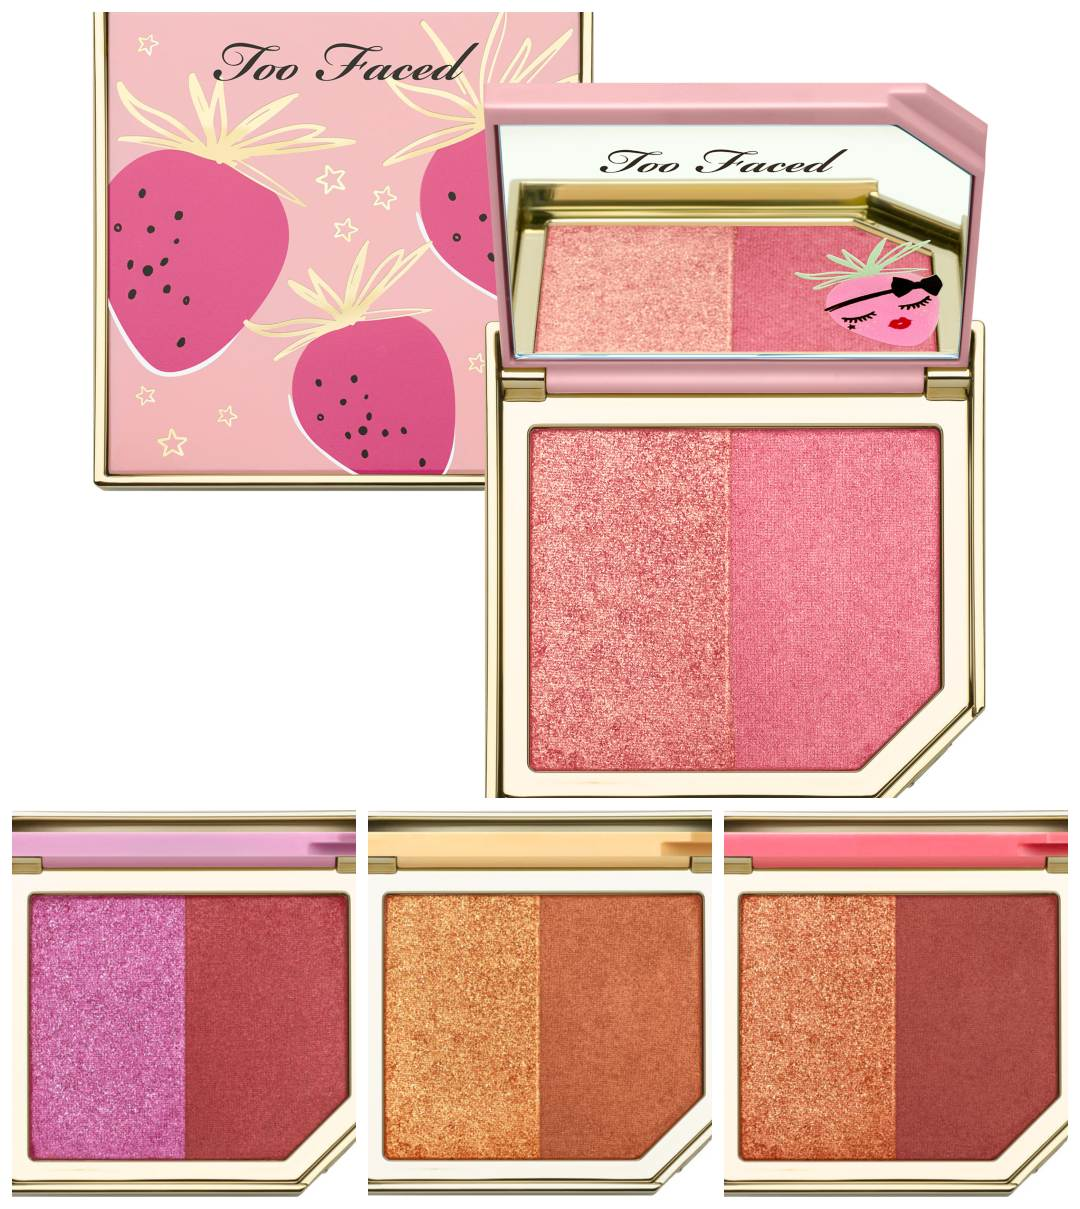 Too Faced Fruit Cocktail Blush Duo.jpg